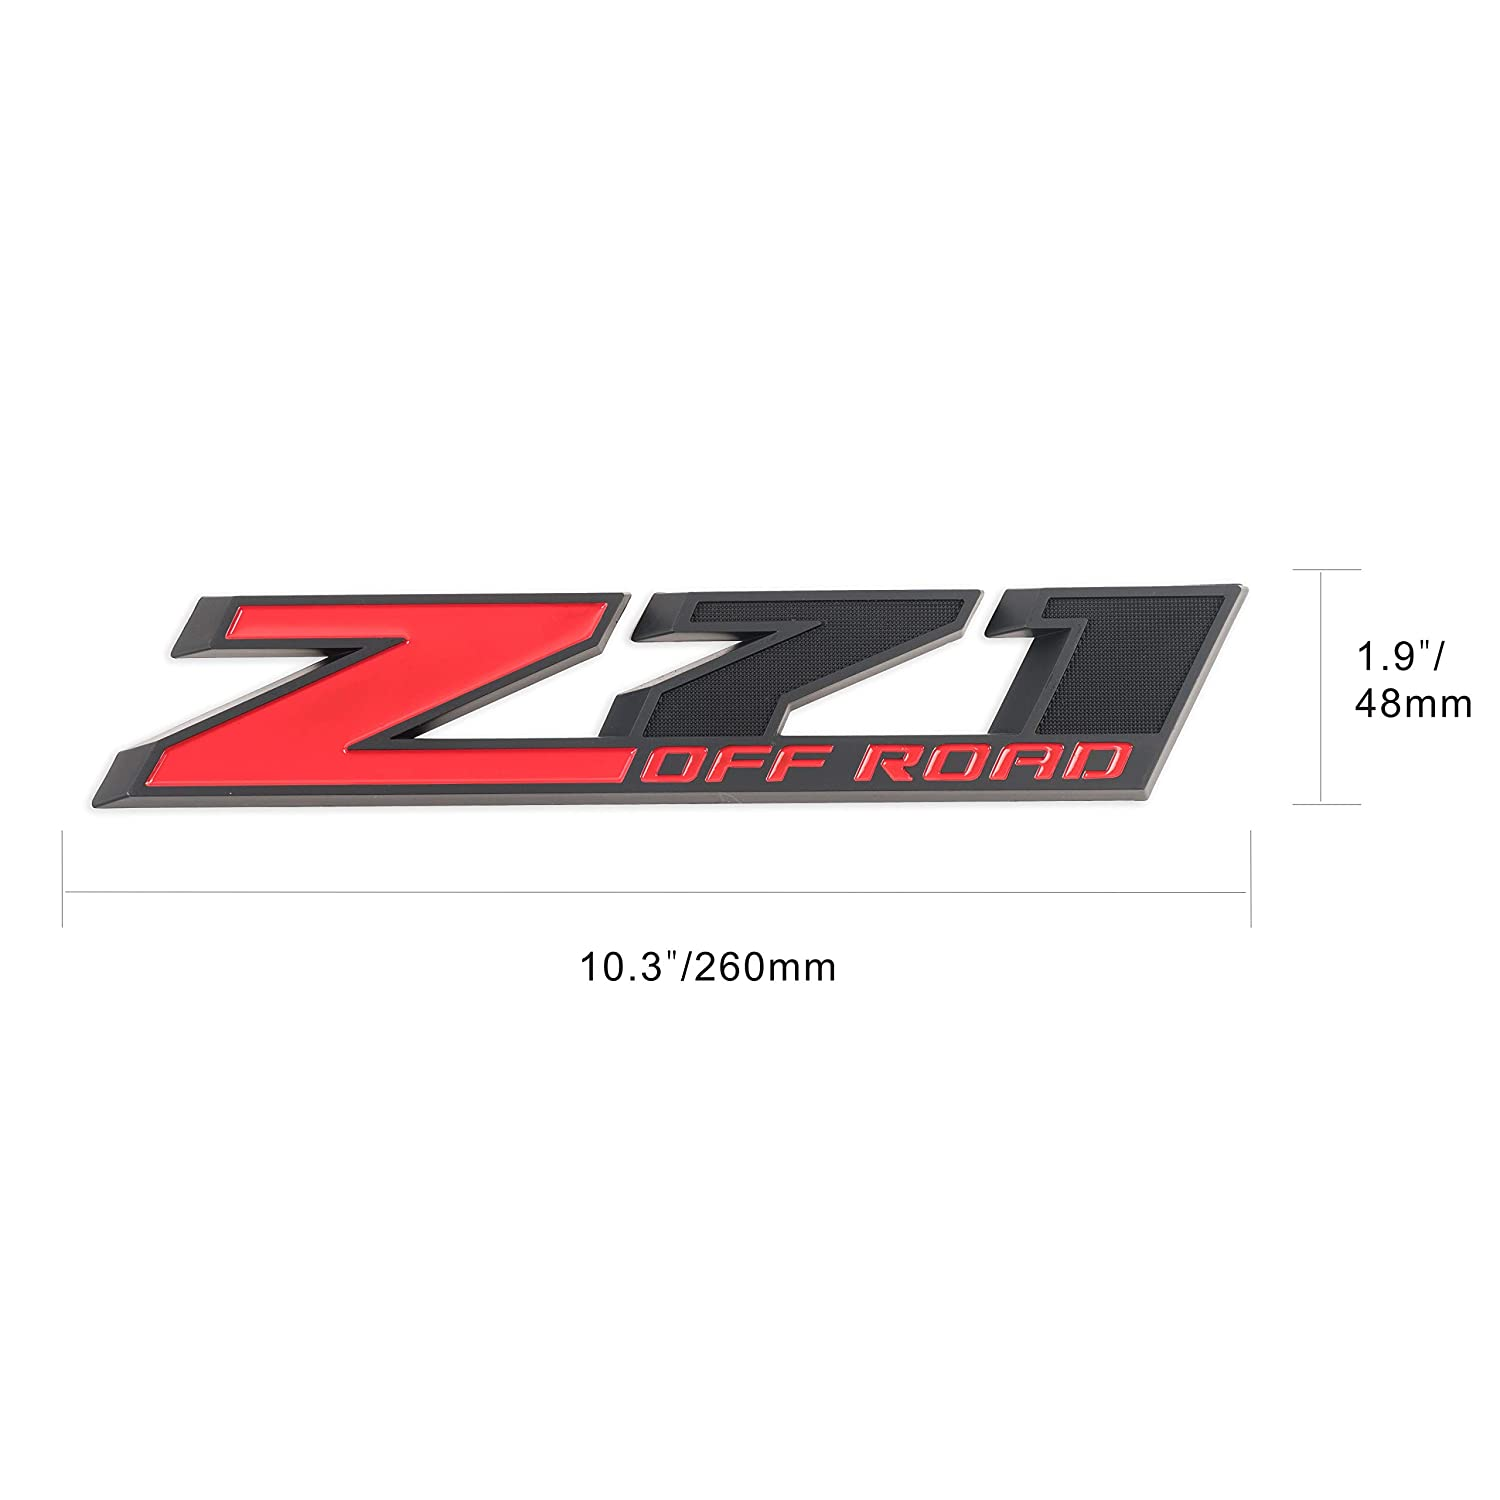 Amazon com 2pack z71 emblem z71 off road decal badge for chevy silverado colorado gmc sierra red matte black automotive